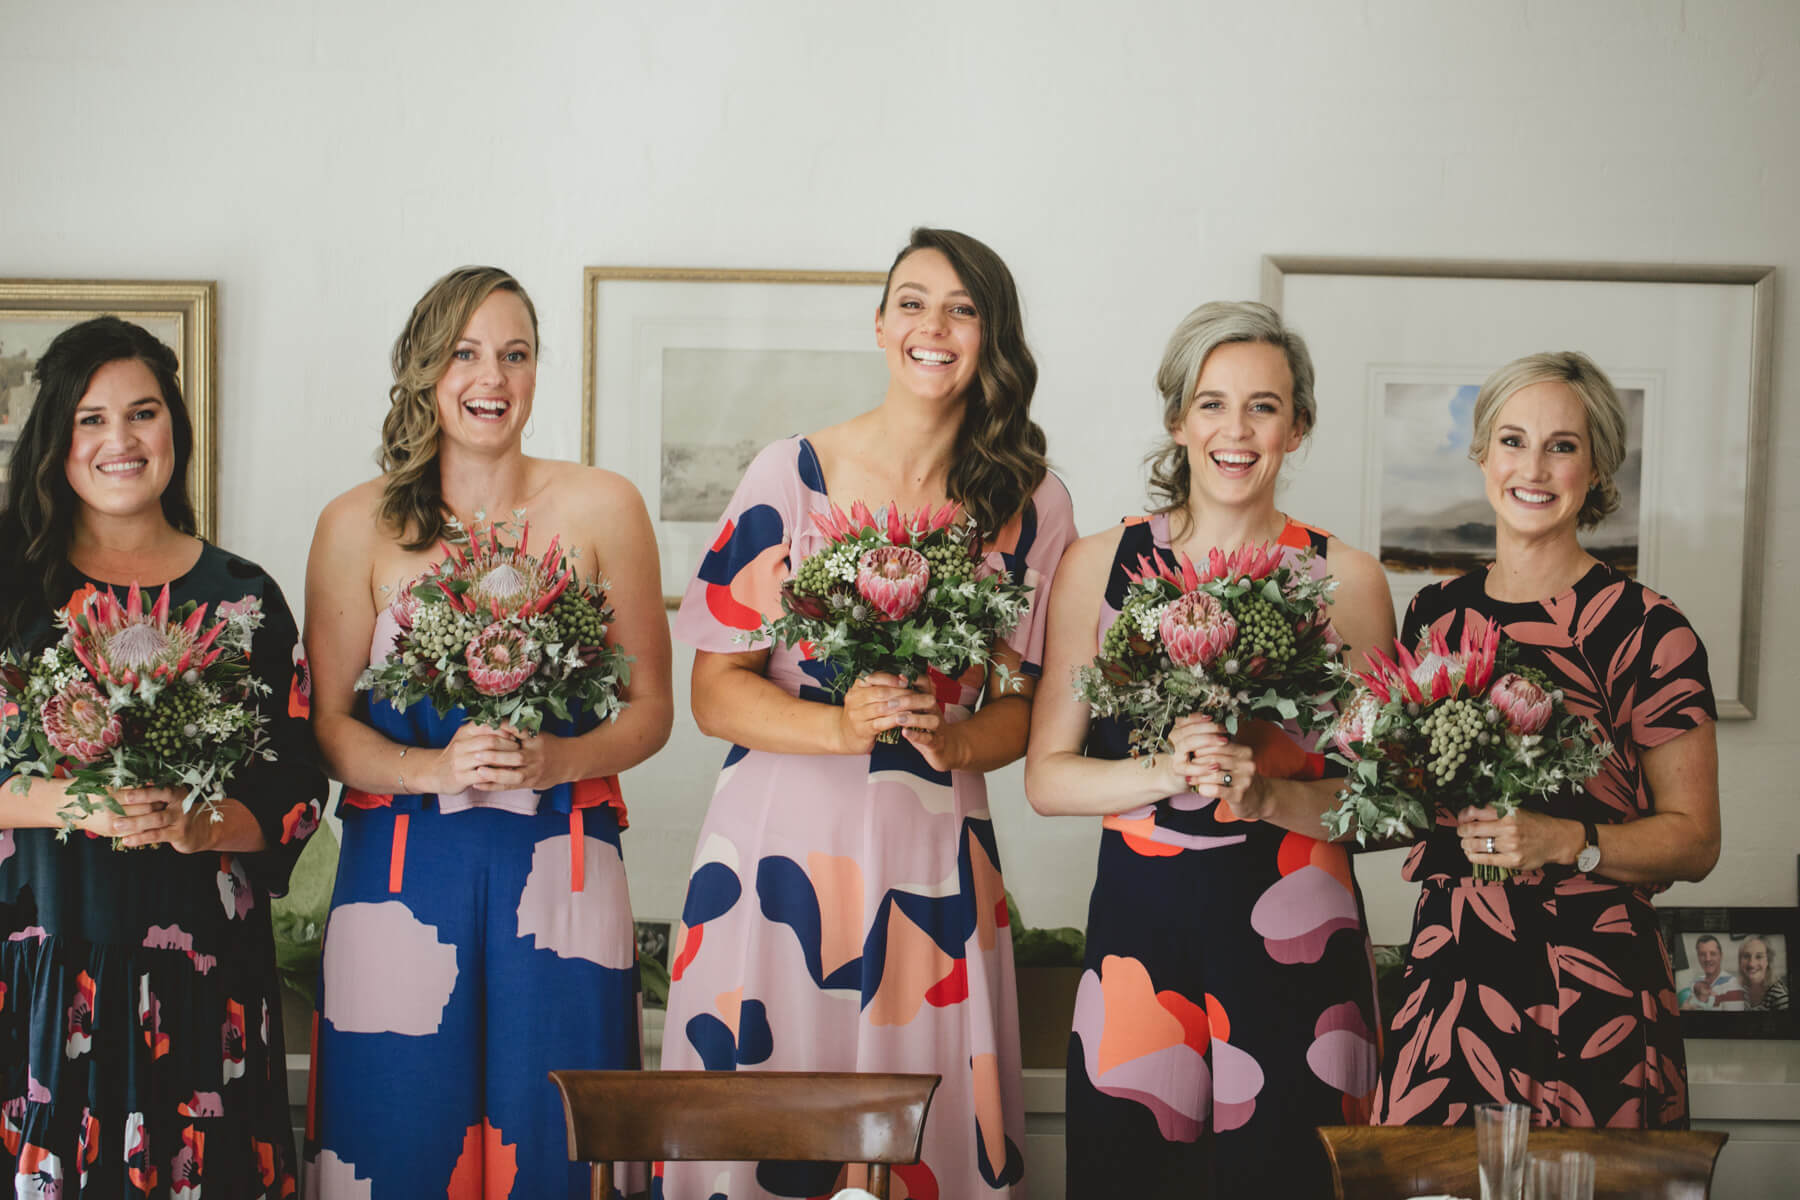 Wedding Films Melbourne Expert to Capture Your First Look And a Lot More